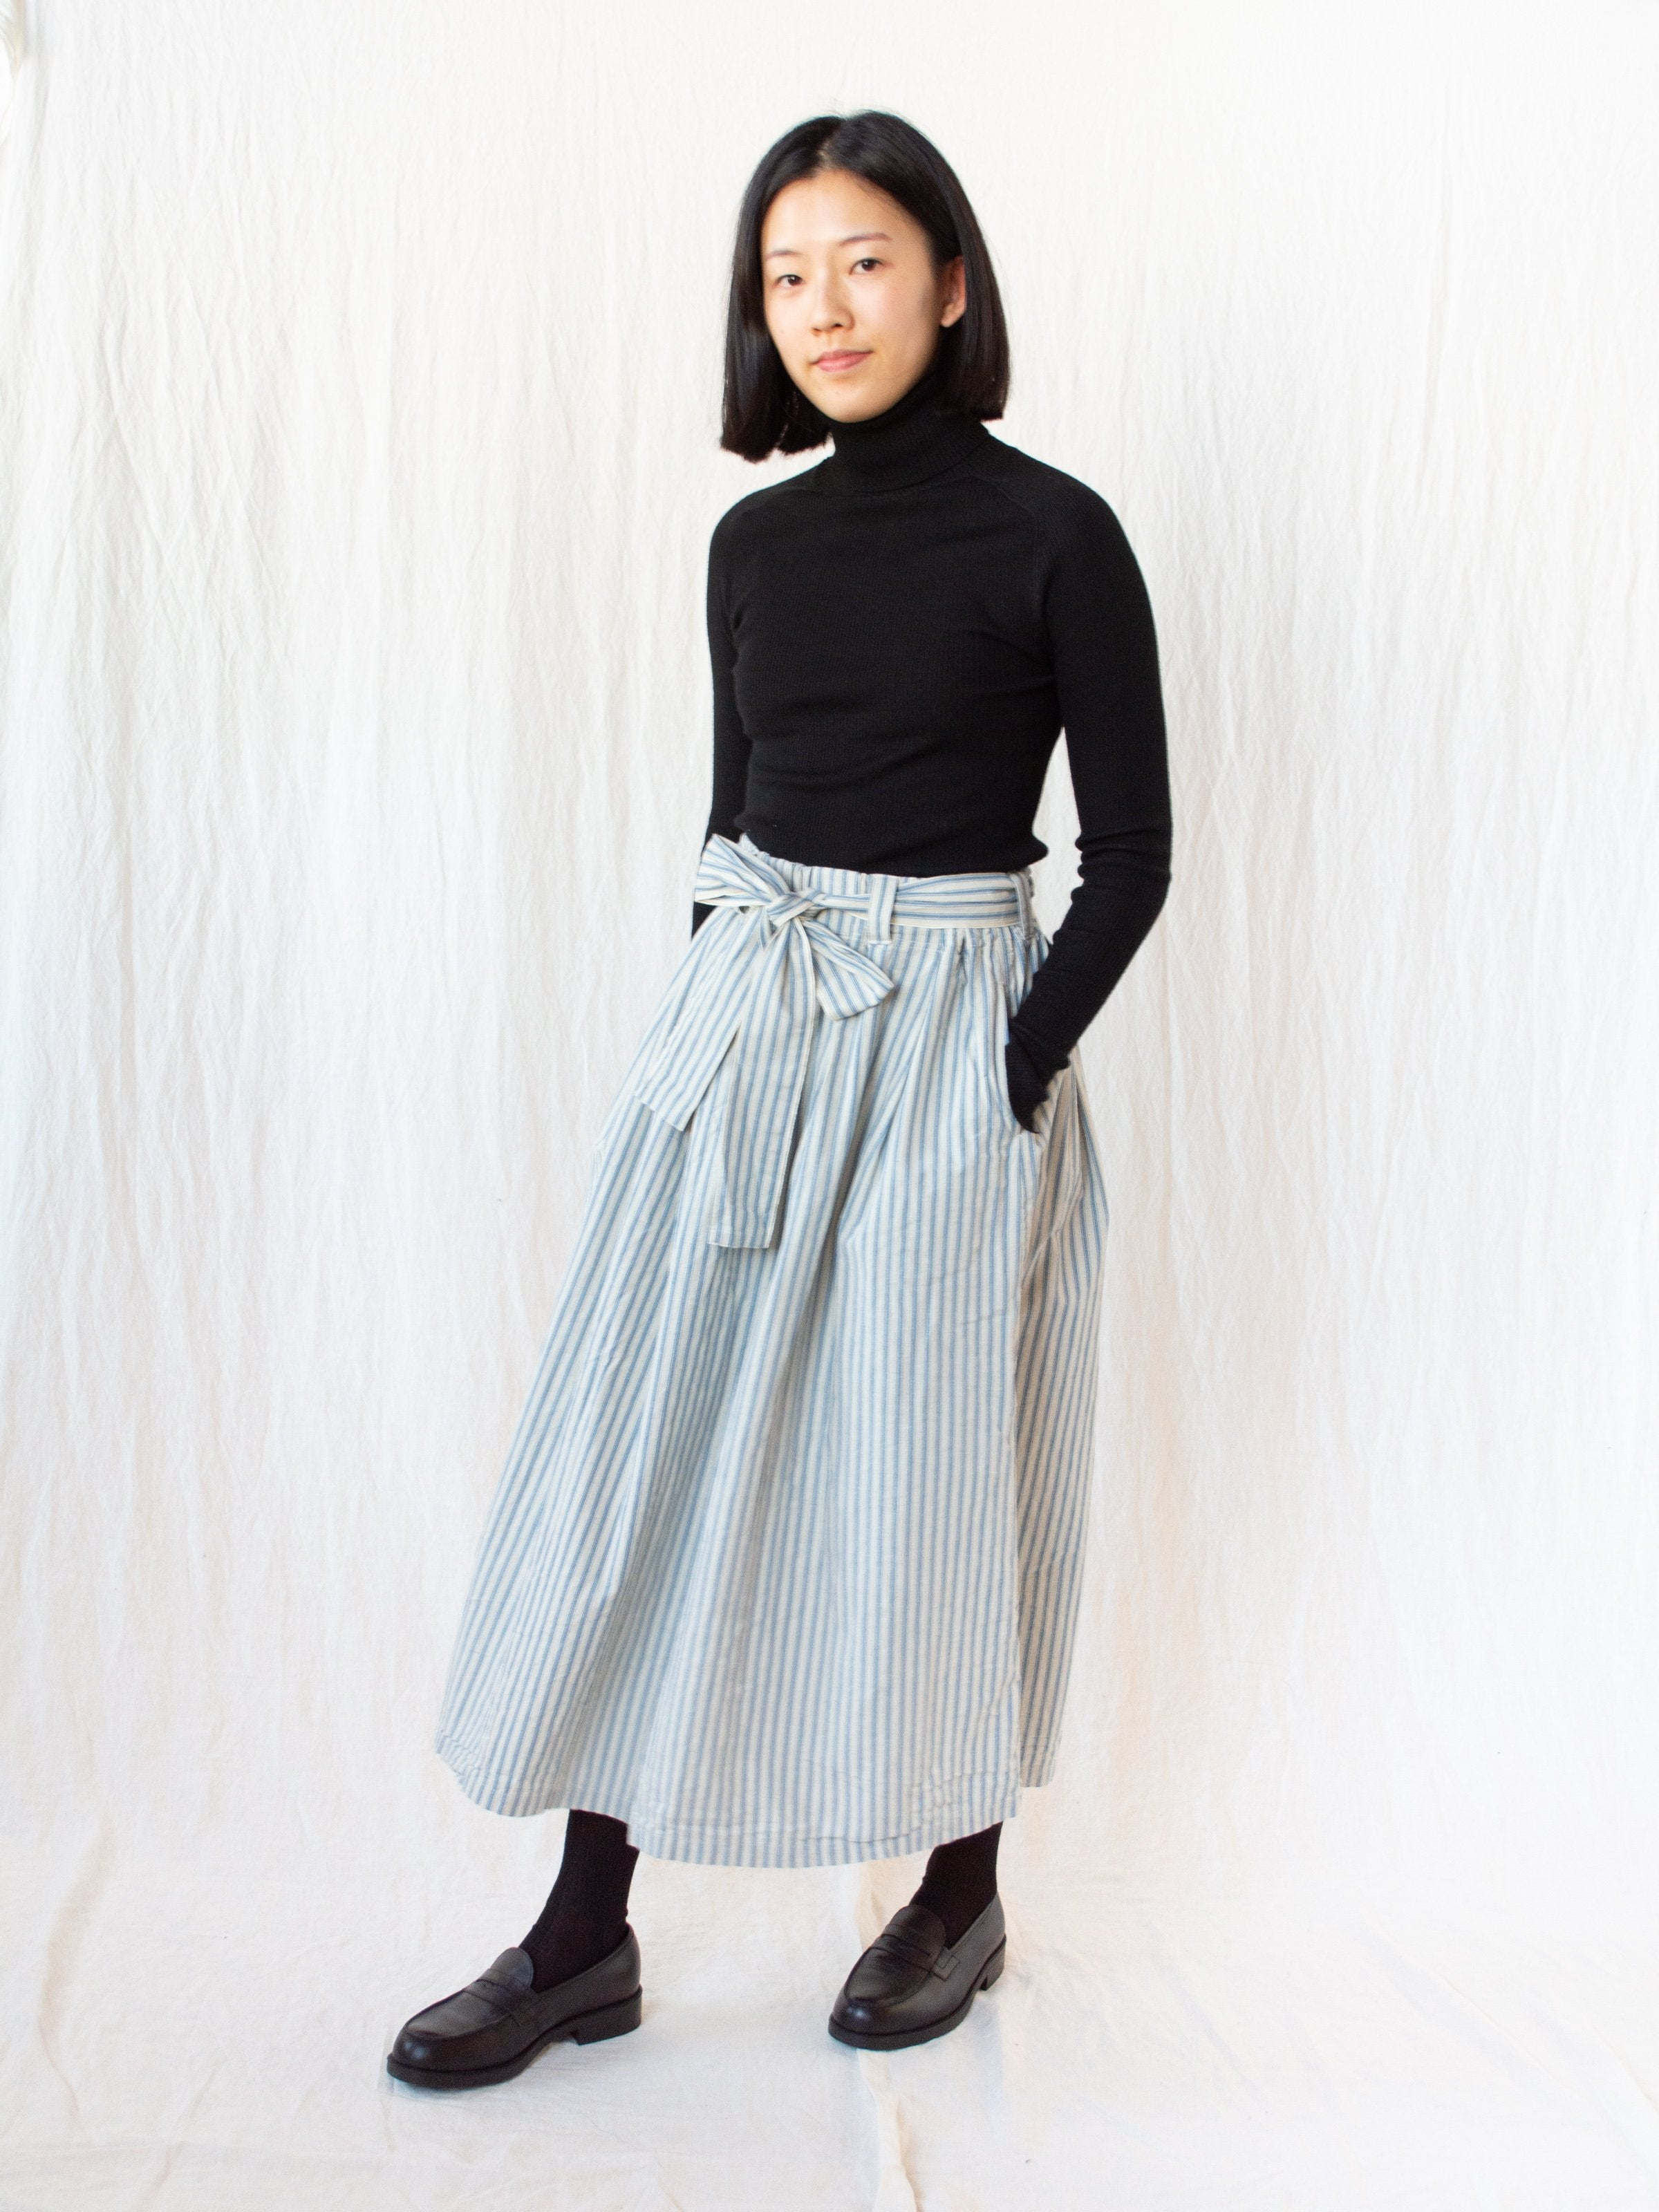 Namu Shop - Ichi Antiquites Indigo Stripe Skirt - Light Indigo